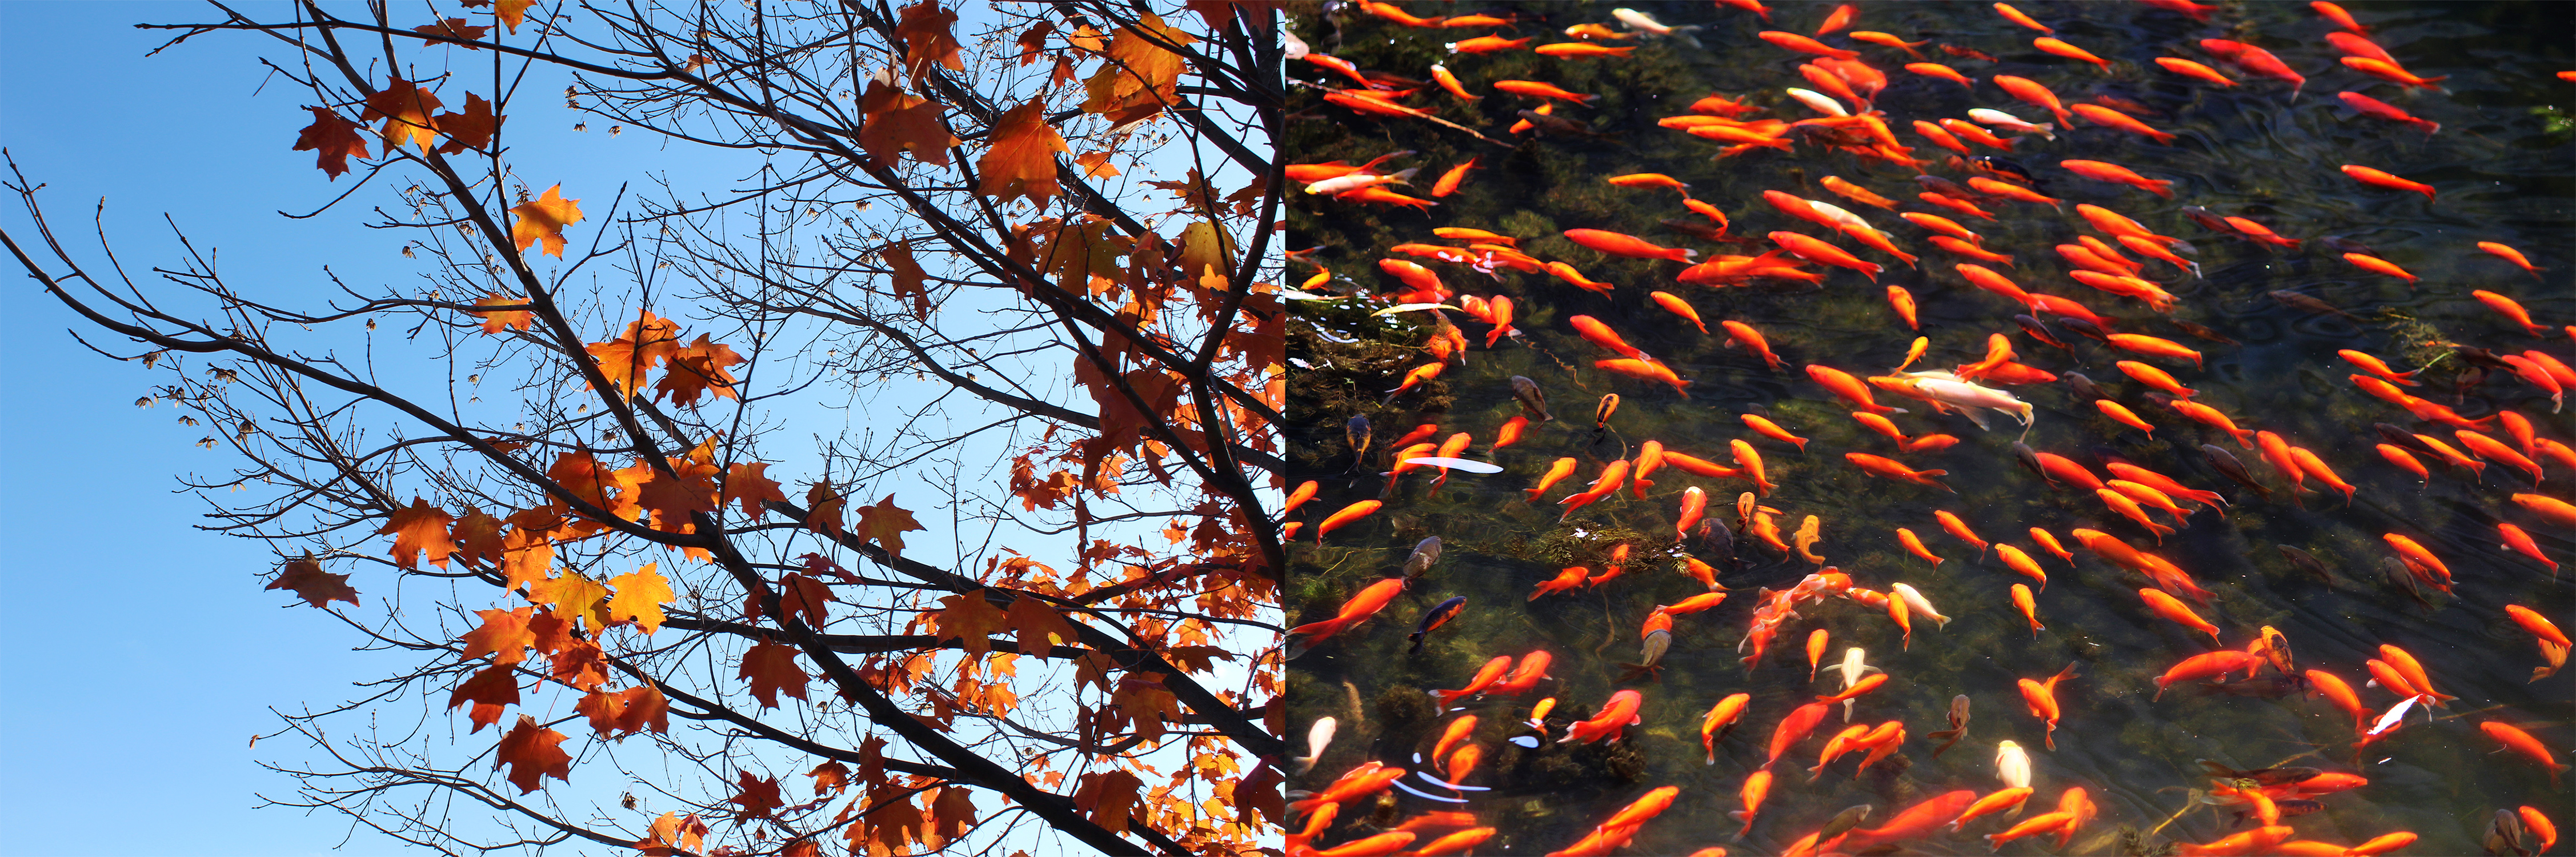 Image of a tree juxtaposed with swimming fish